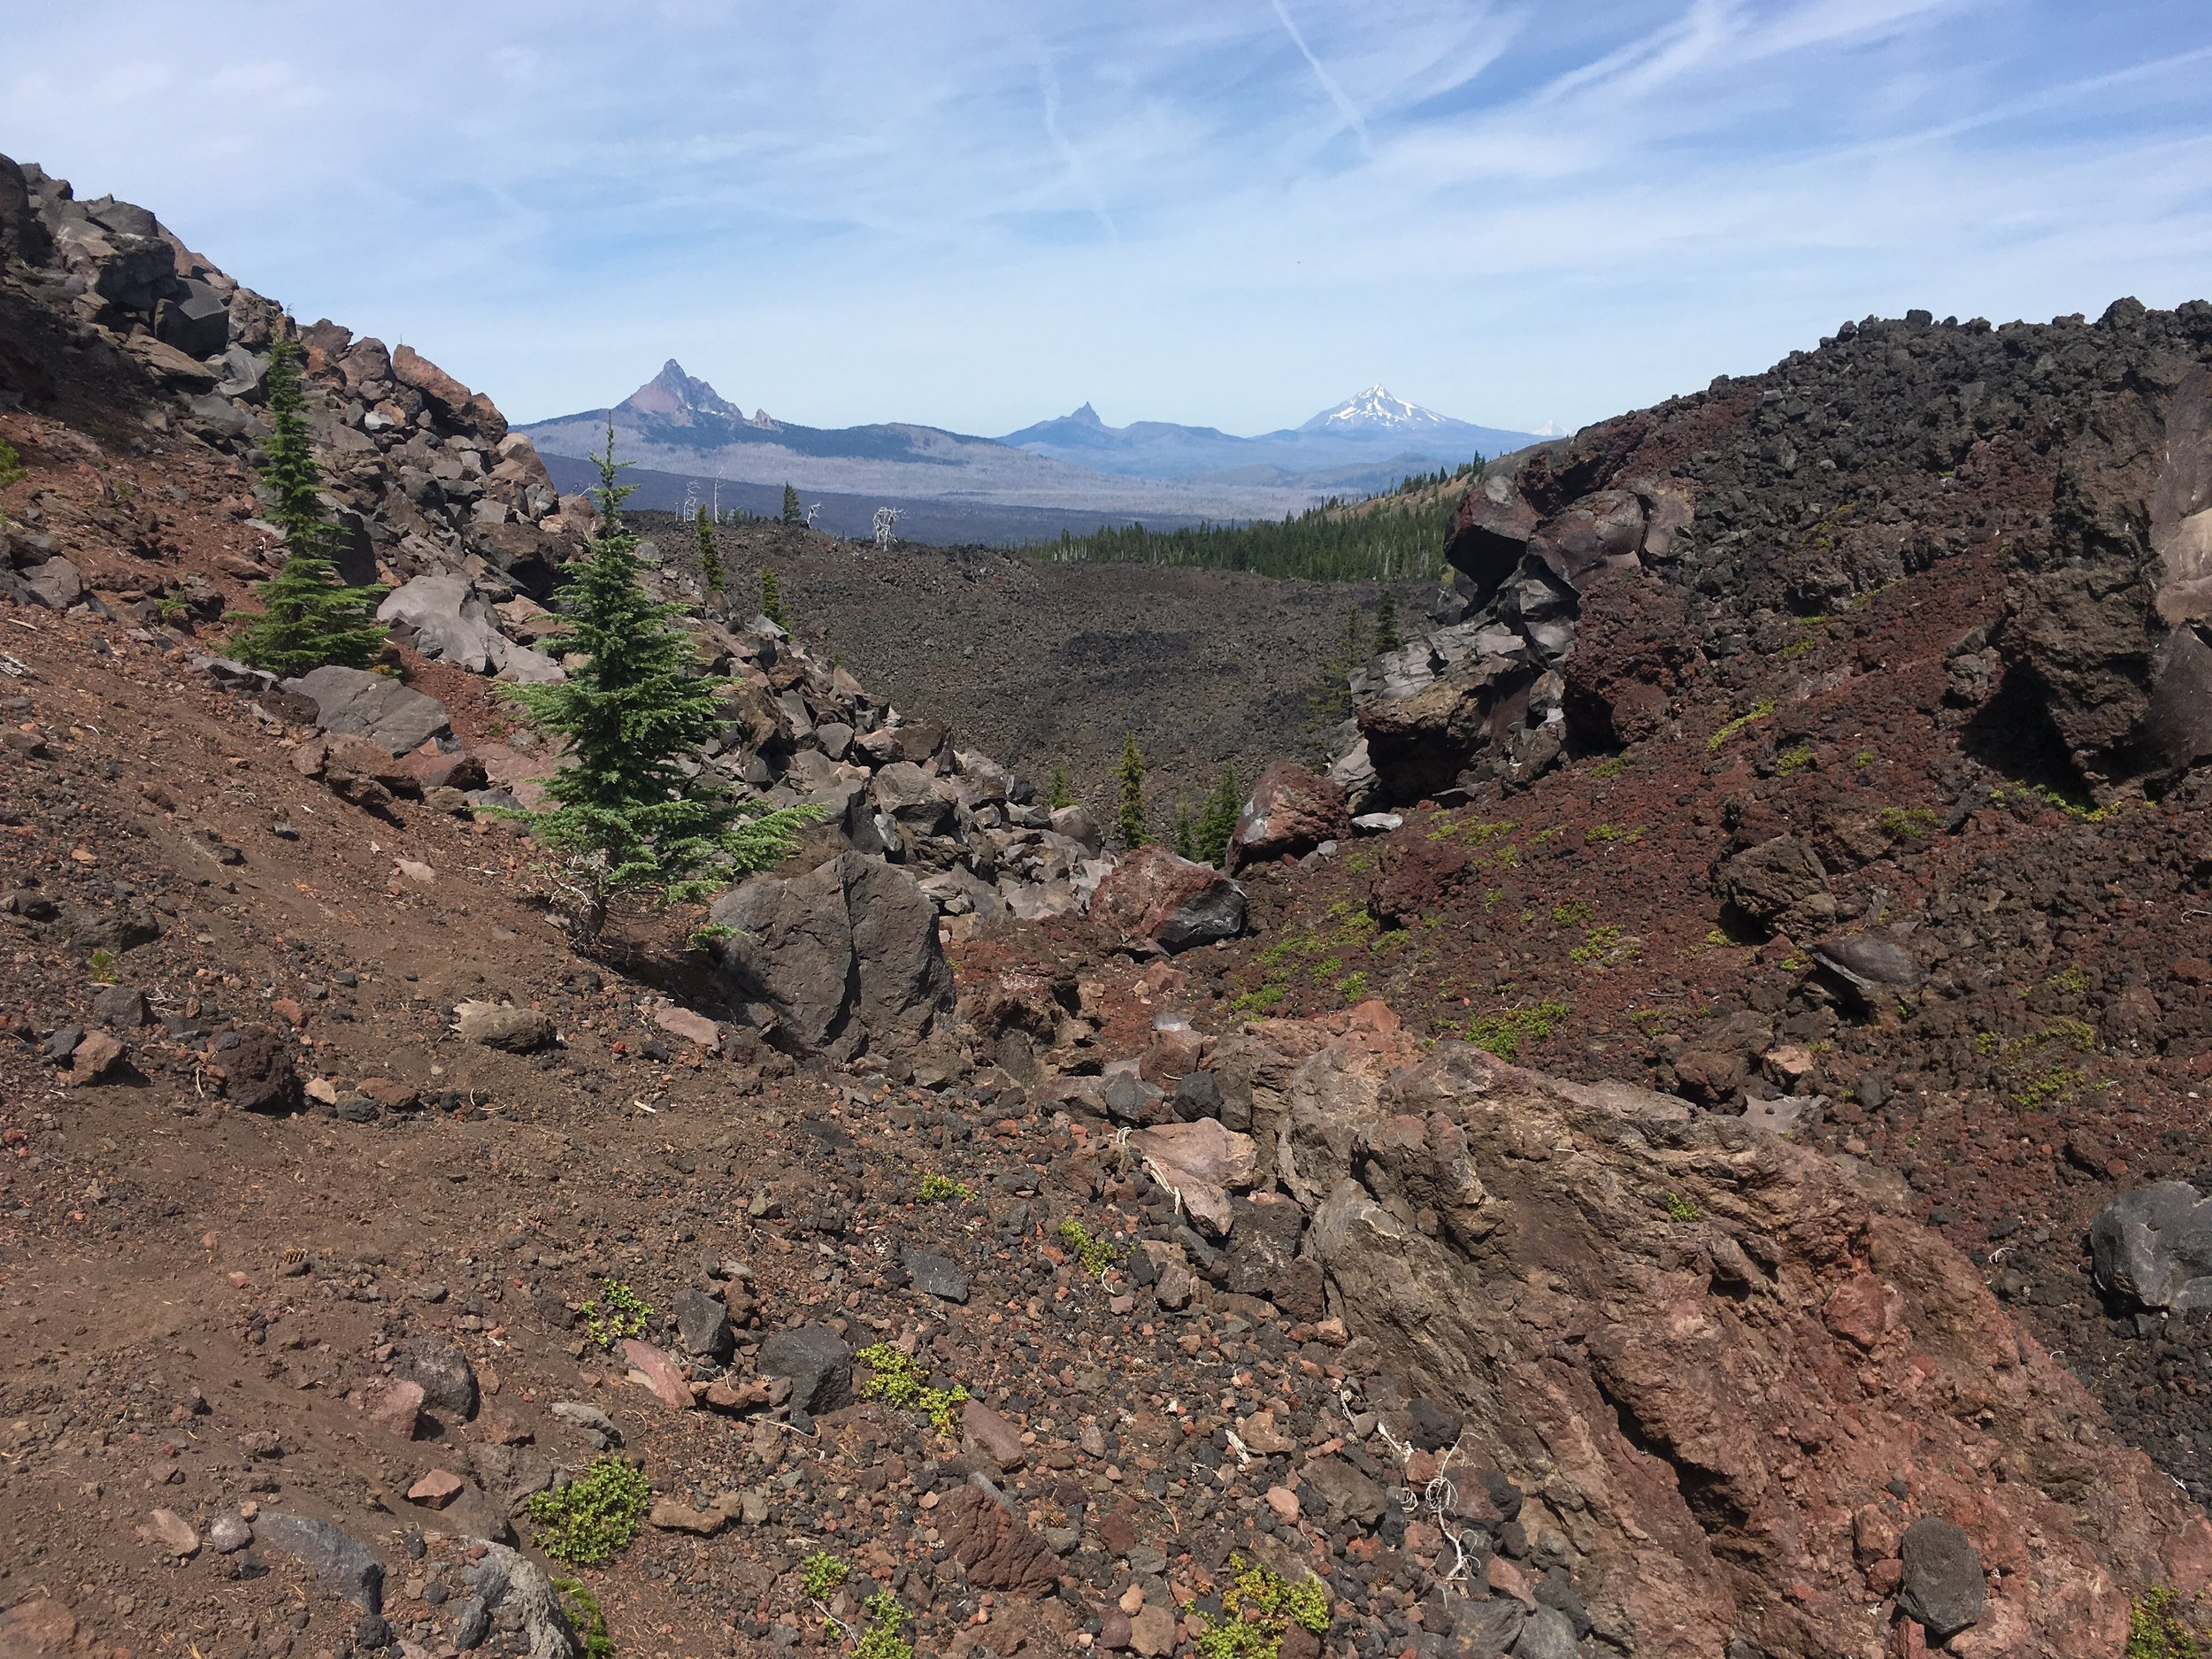 From left to right Mt. Washington, Three Fingered Jack, and Mt. Jefferson (with Mt. Hood faintly visible to his R shoulder)